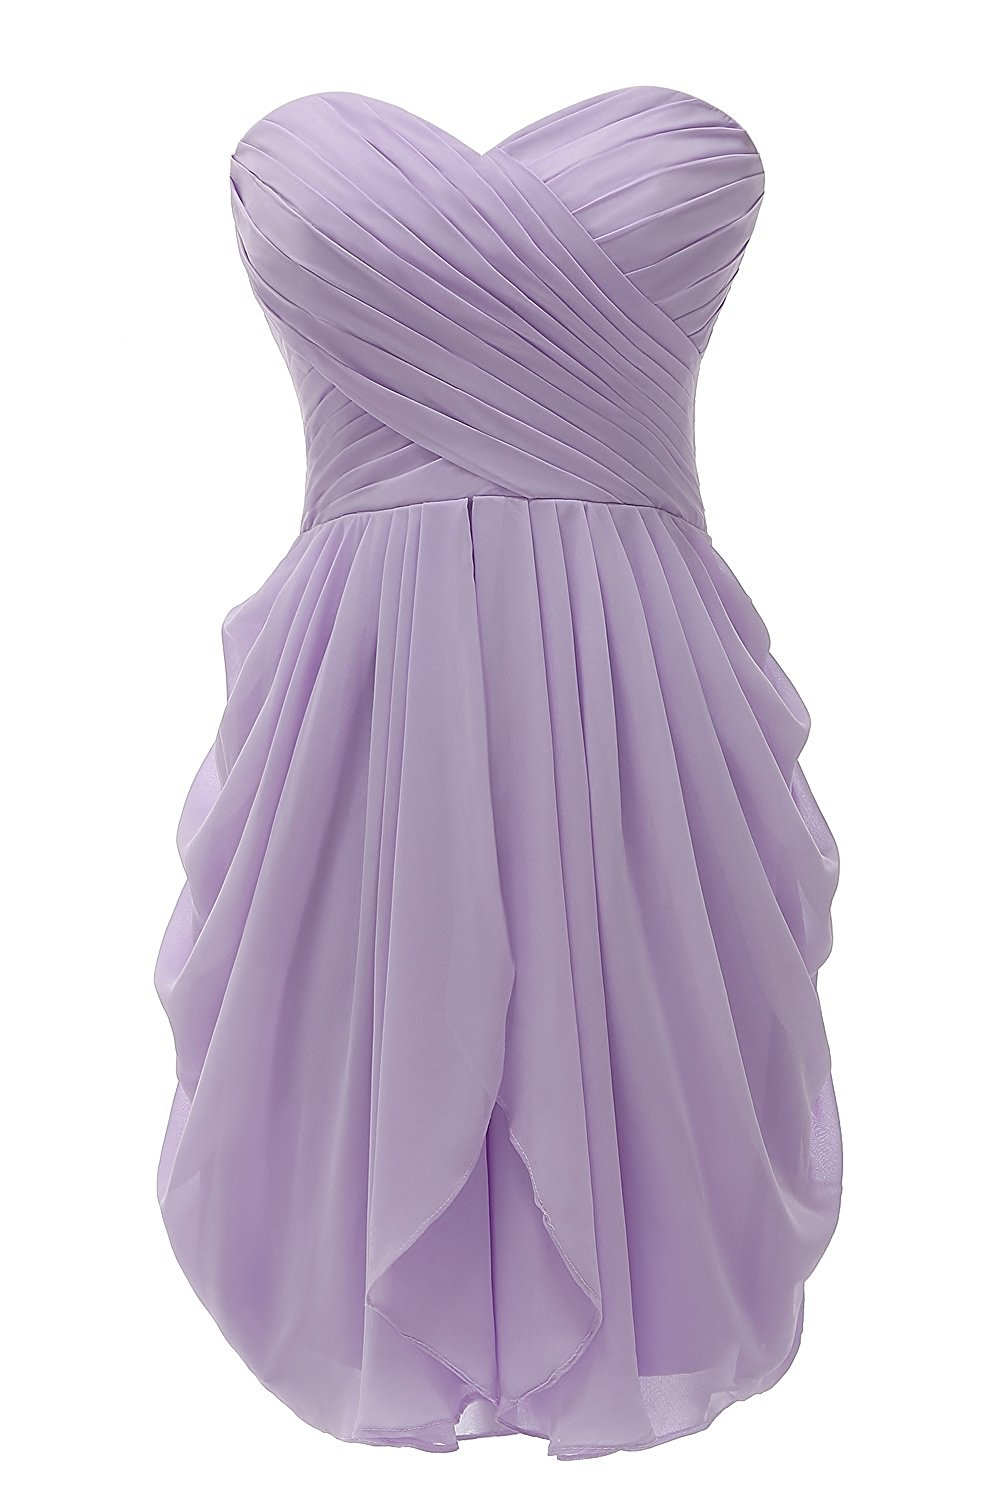 sweetheart strapless pleat lilac bridesmaid dresses short coral chiffon bridesmaid dresses baby blue for beach wedding